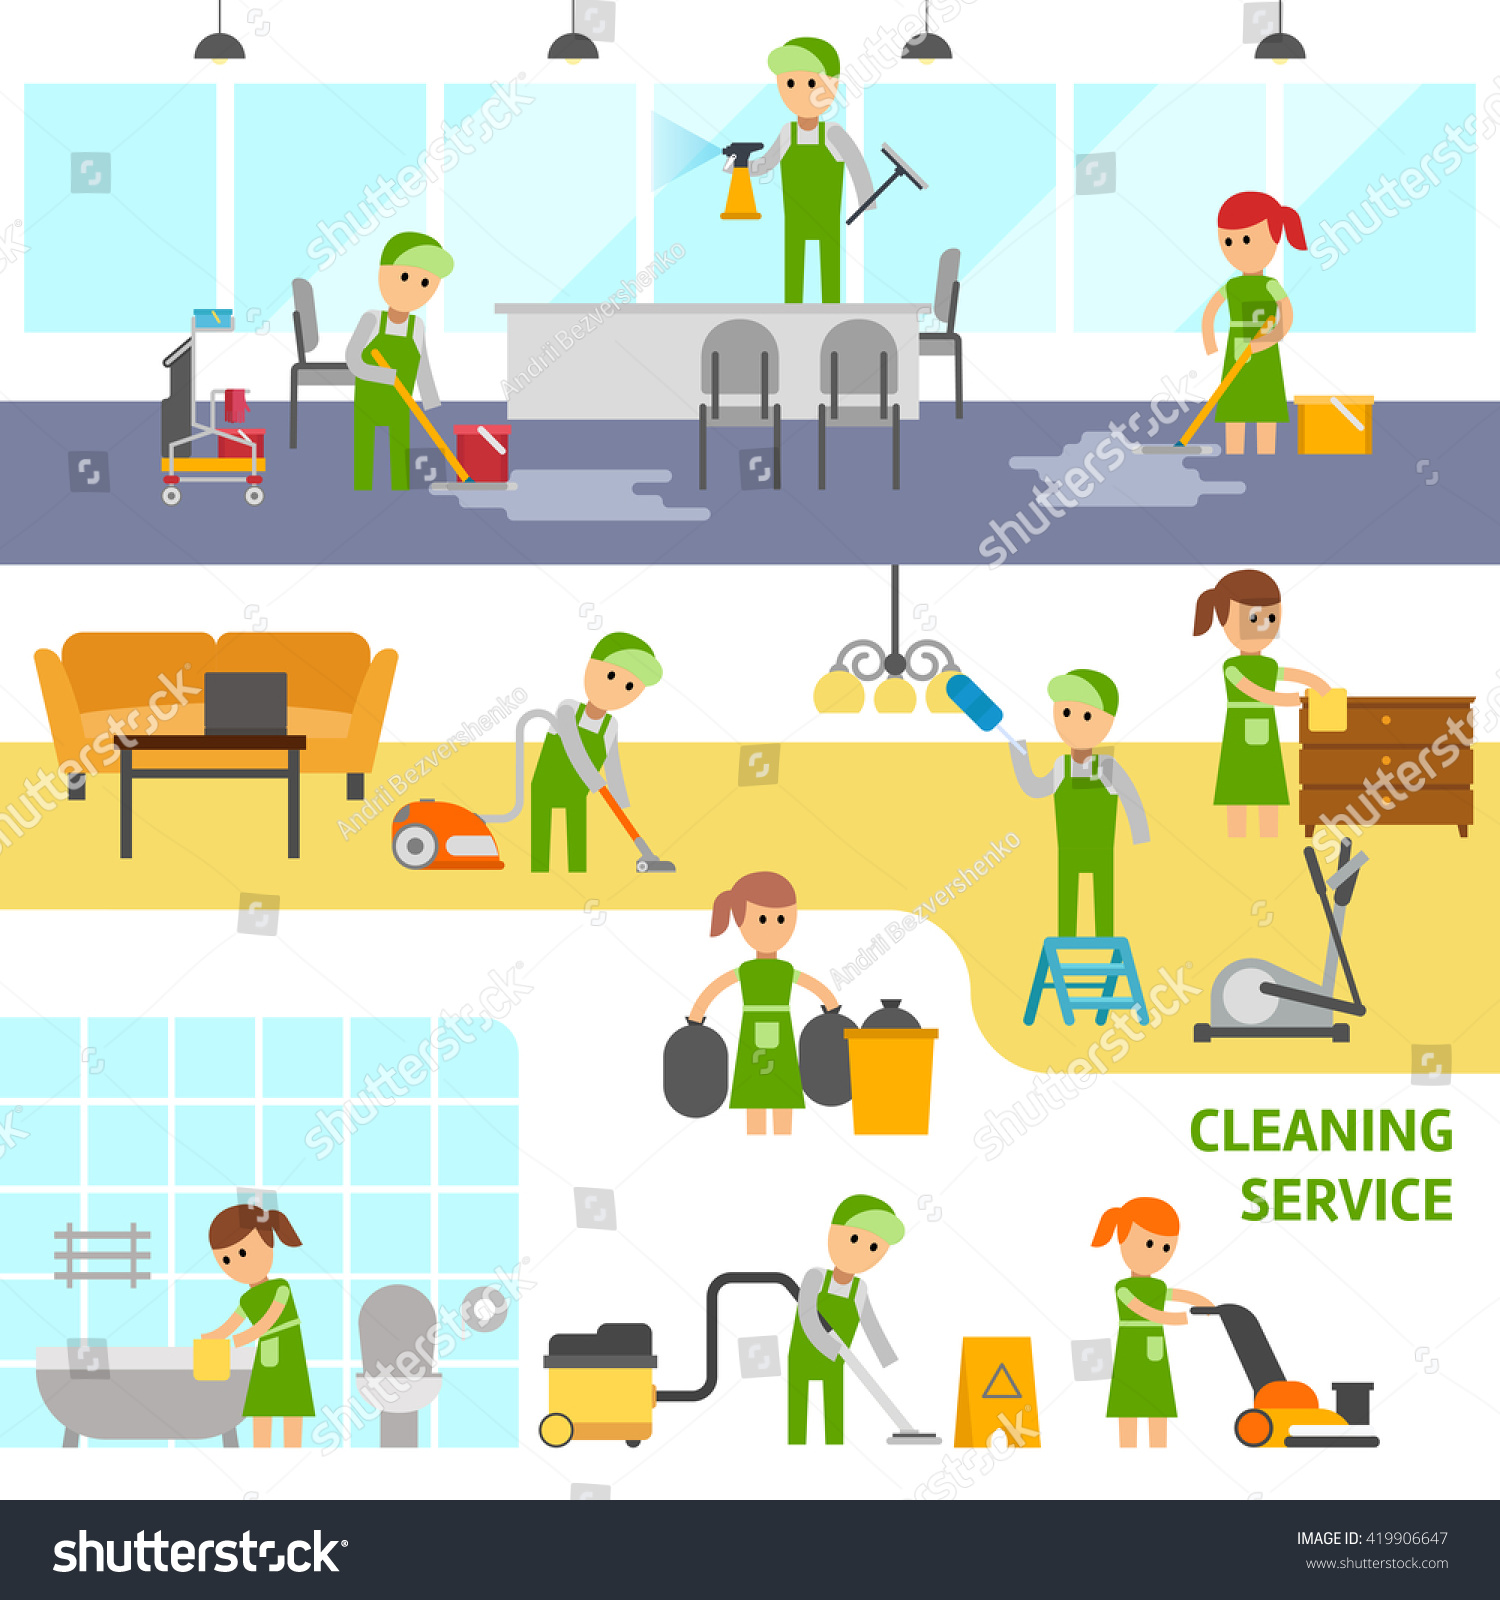 Cleaning service infographic elements cleaning office for Bathroom cleaning companies